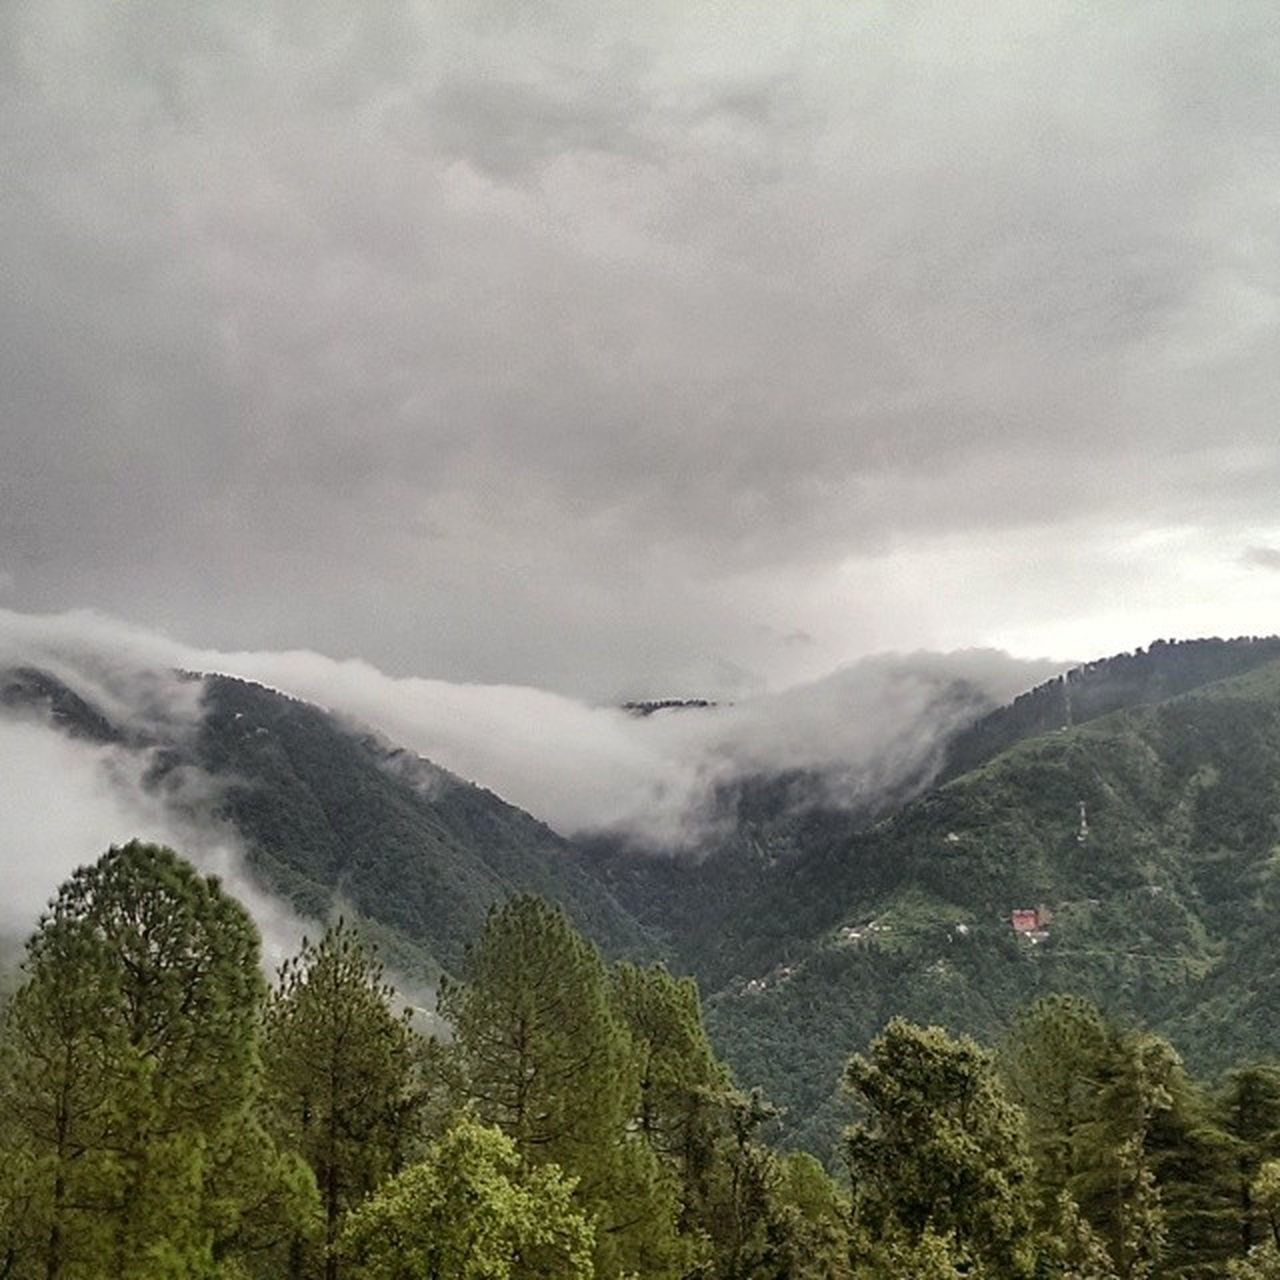 nature, mountain, beauty in nature, sky, landscape, tree, outdoors, scenics, forest, day, no people, scenery, range